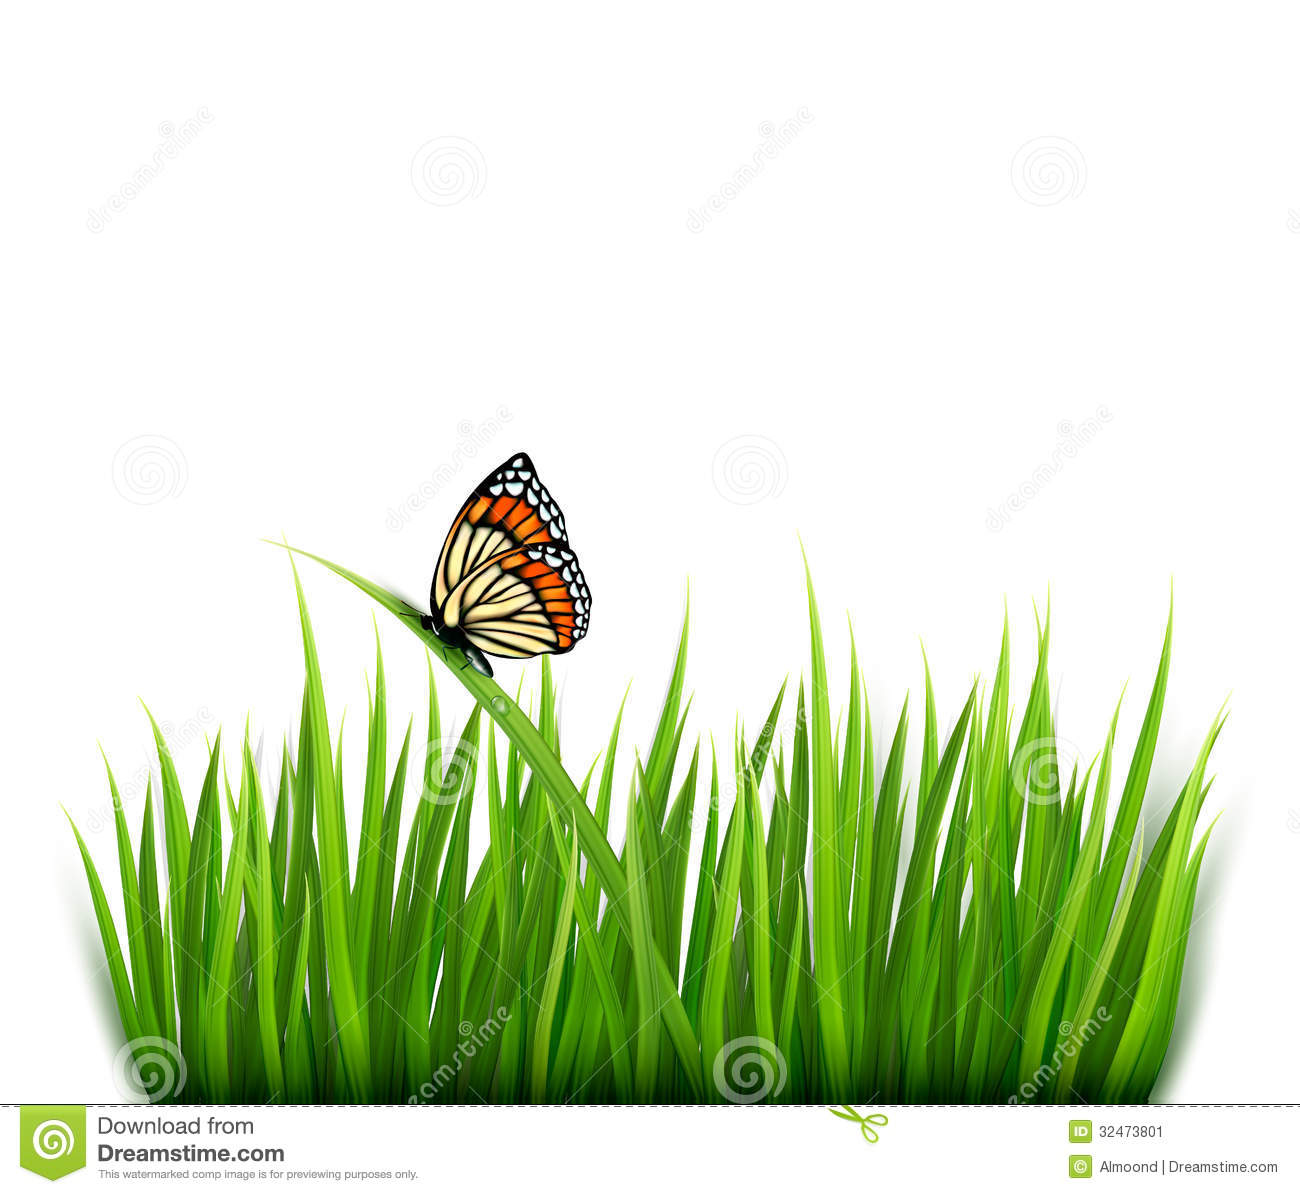 Nature Images 2mb: Nature Background With Green Grass And A Butterfly Stock